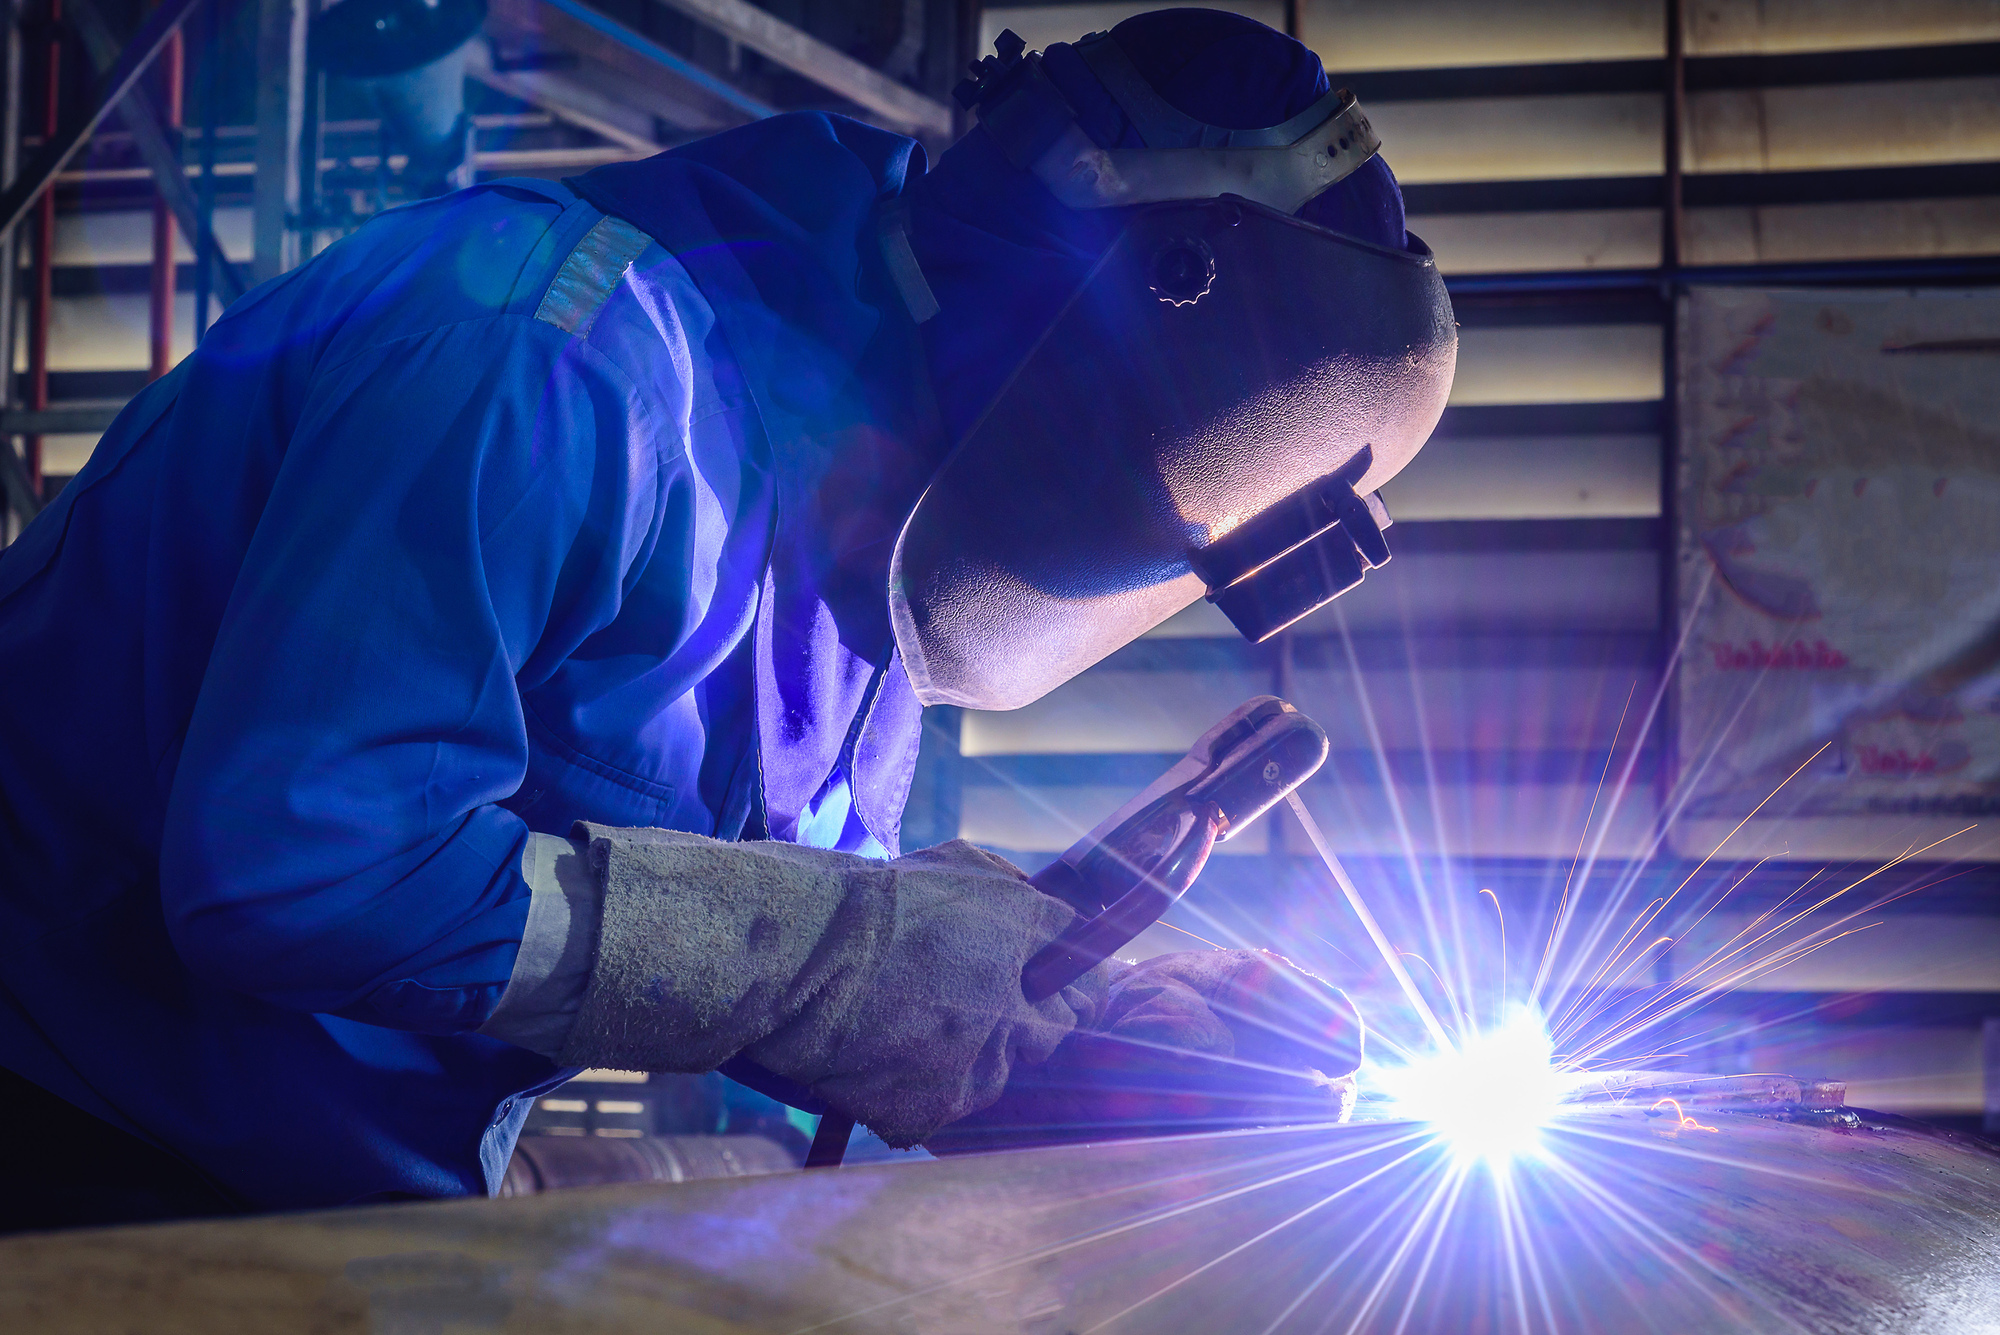 Welding steel structures and bright sparks with len flare